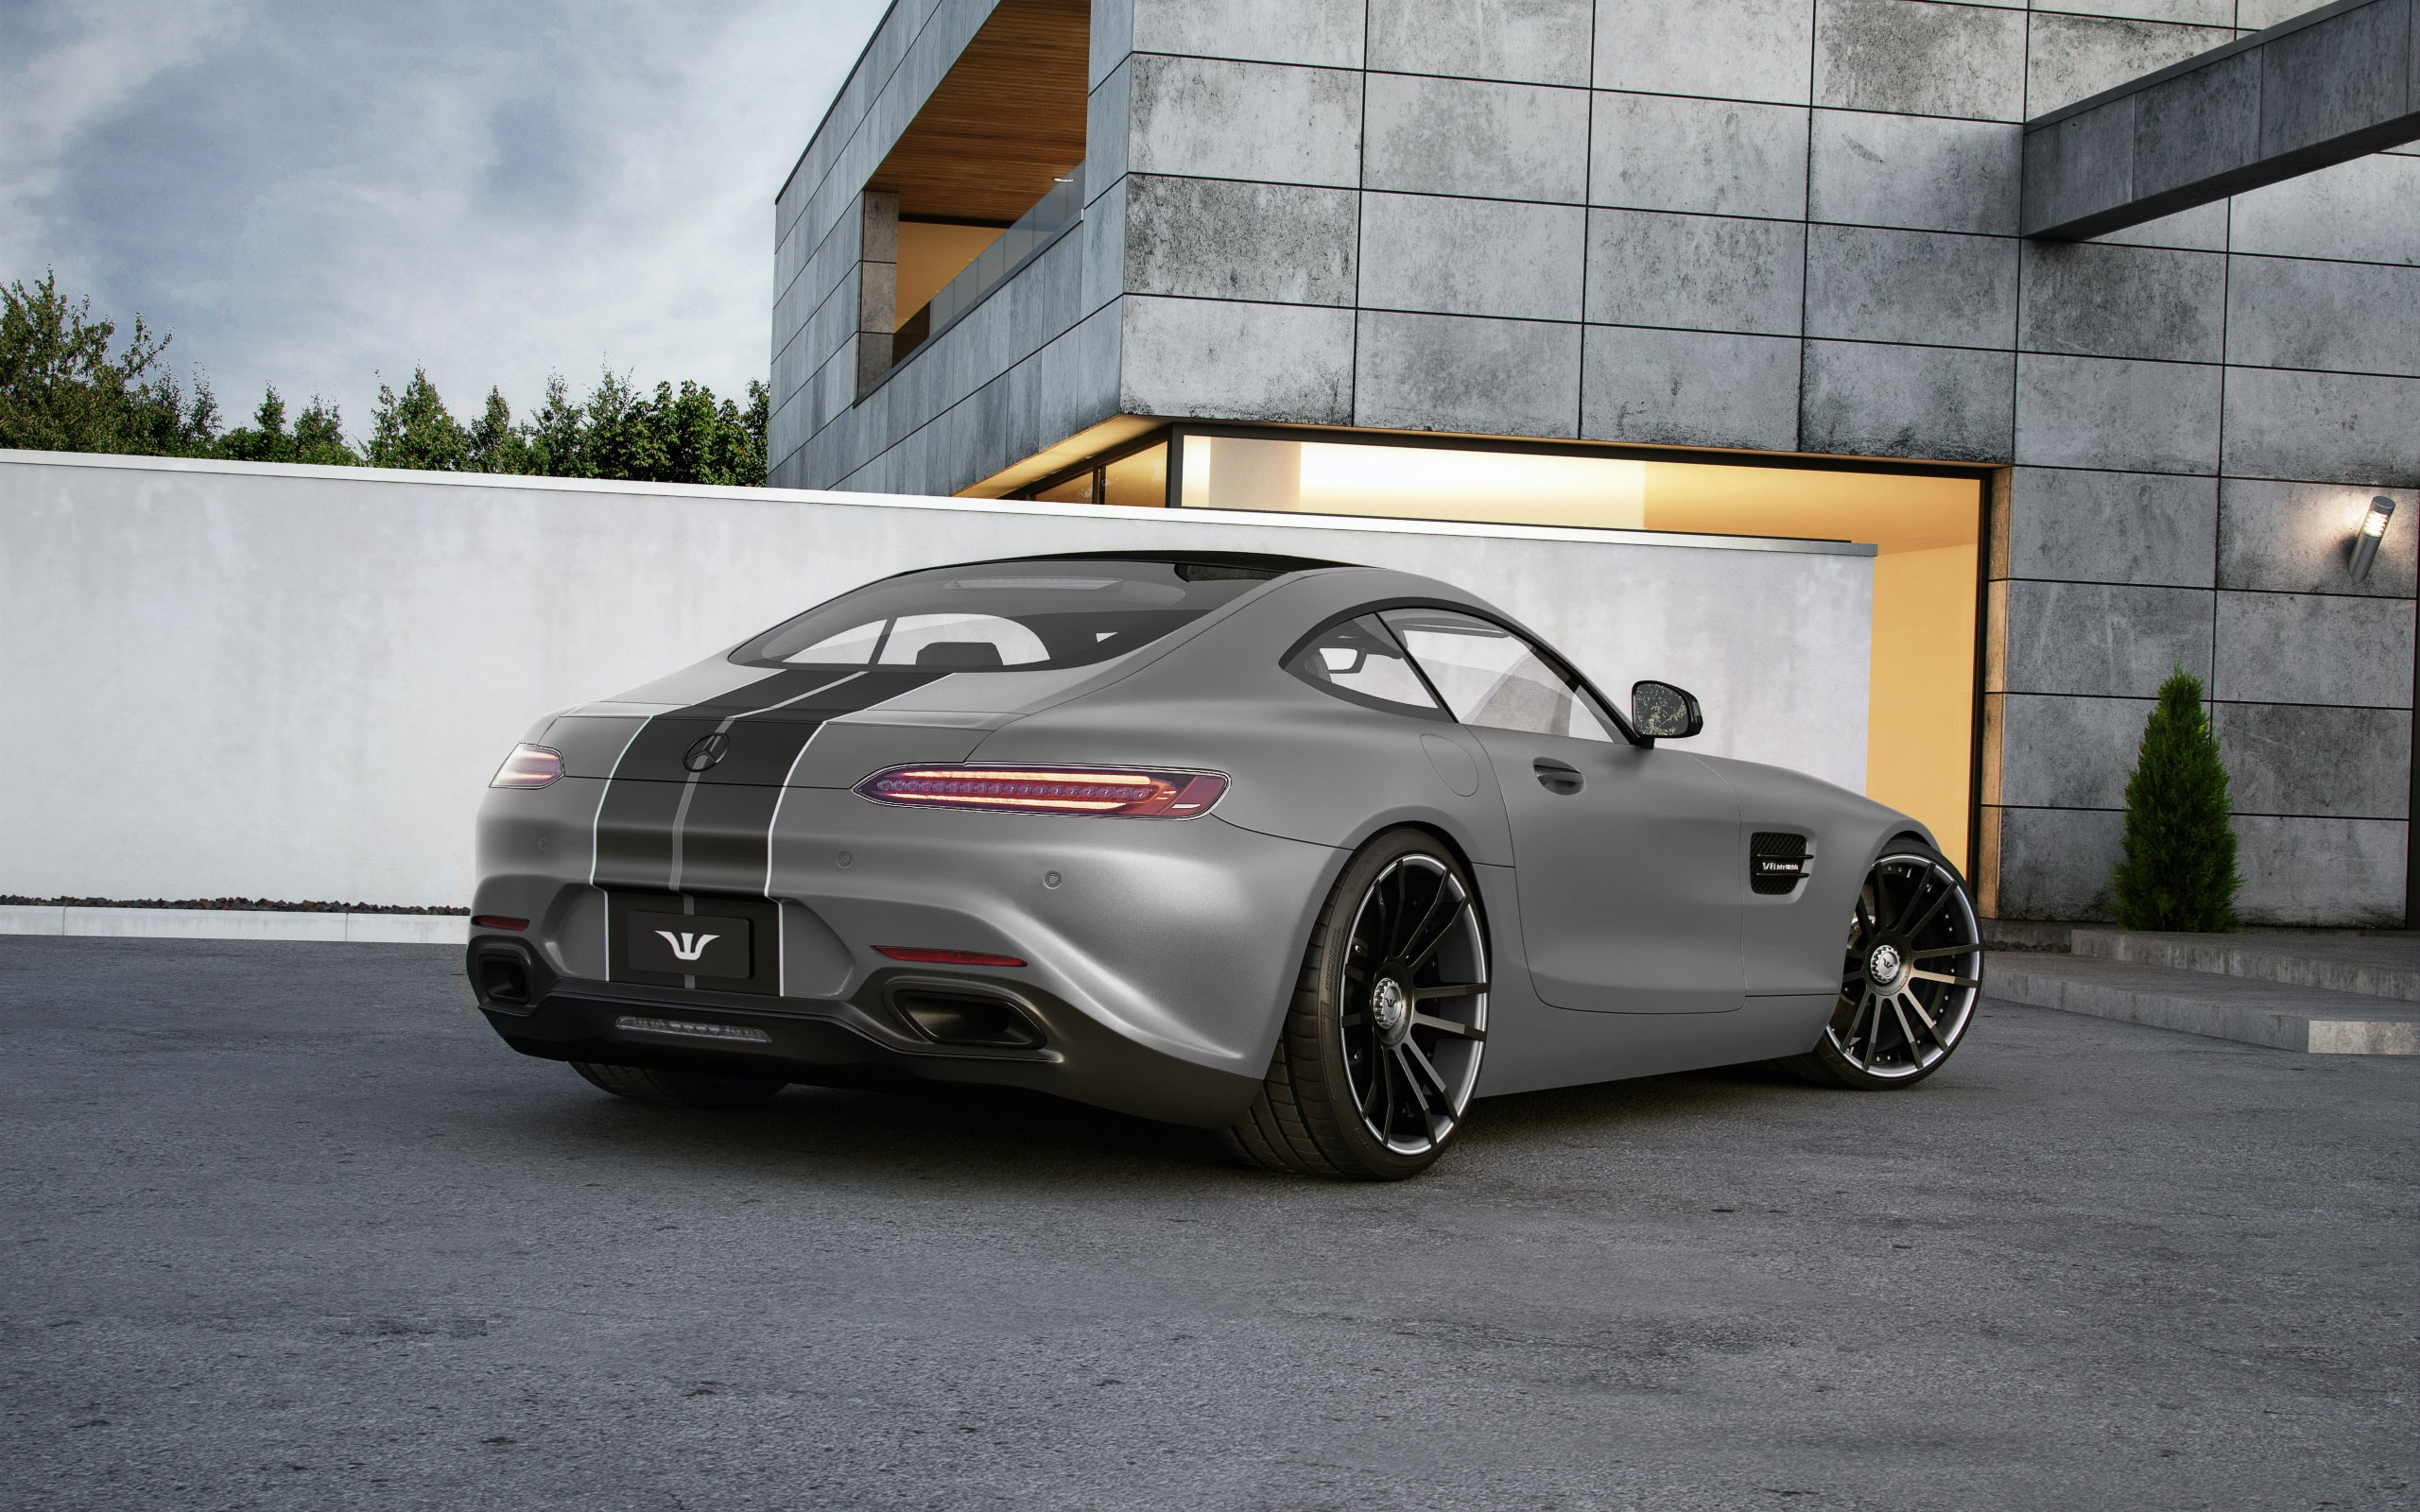 Mercedes AMG GT Tuned By Wheelsandmore To 600 HP